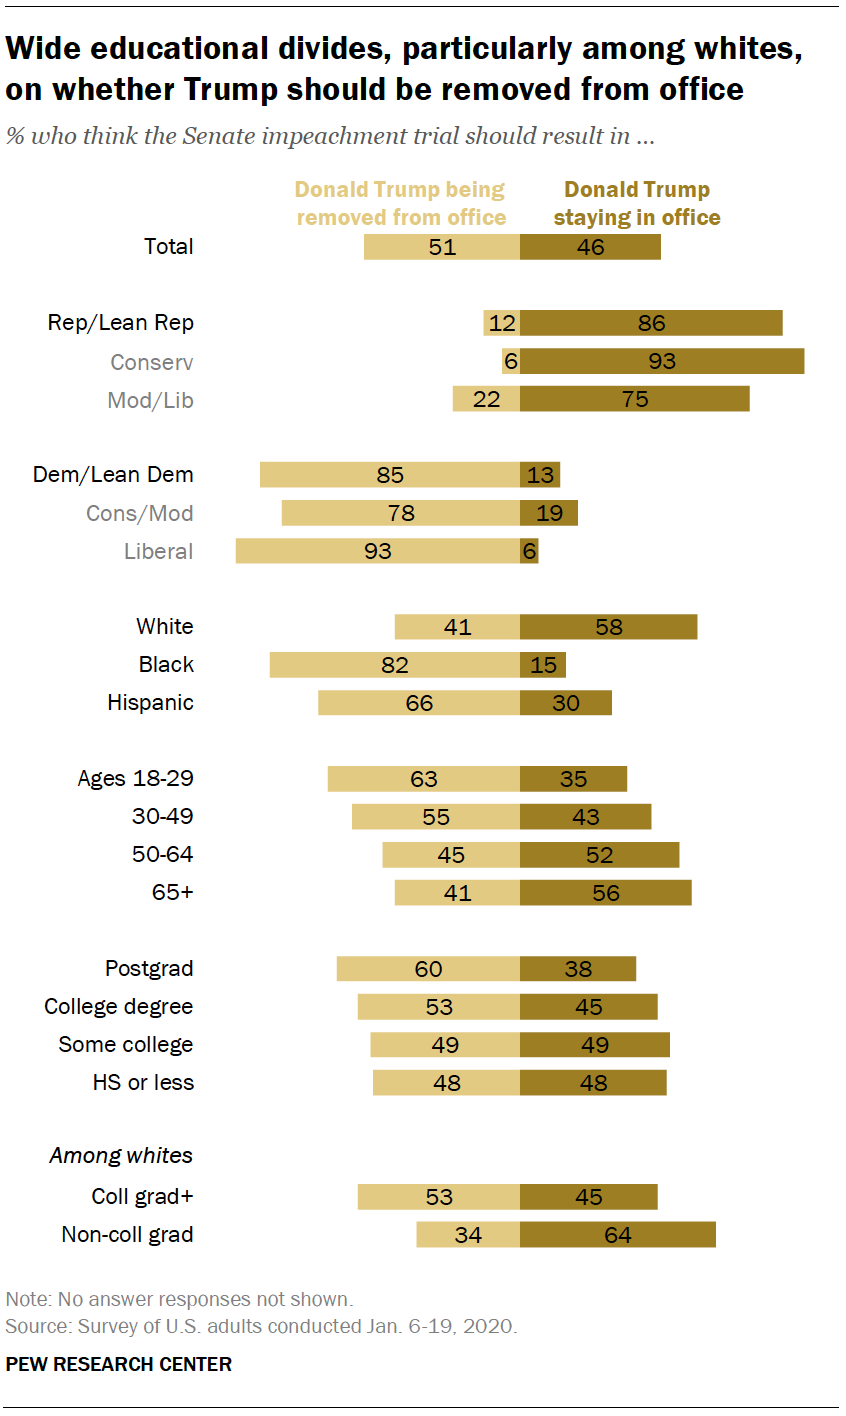 Wide educational divides, particularly among whites, on whether Trump should be removed from office